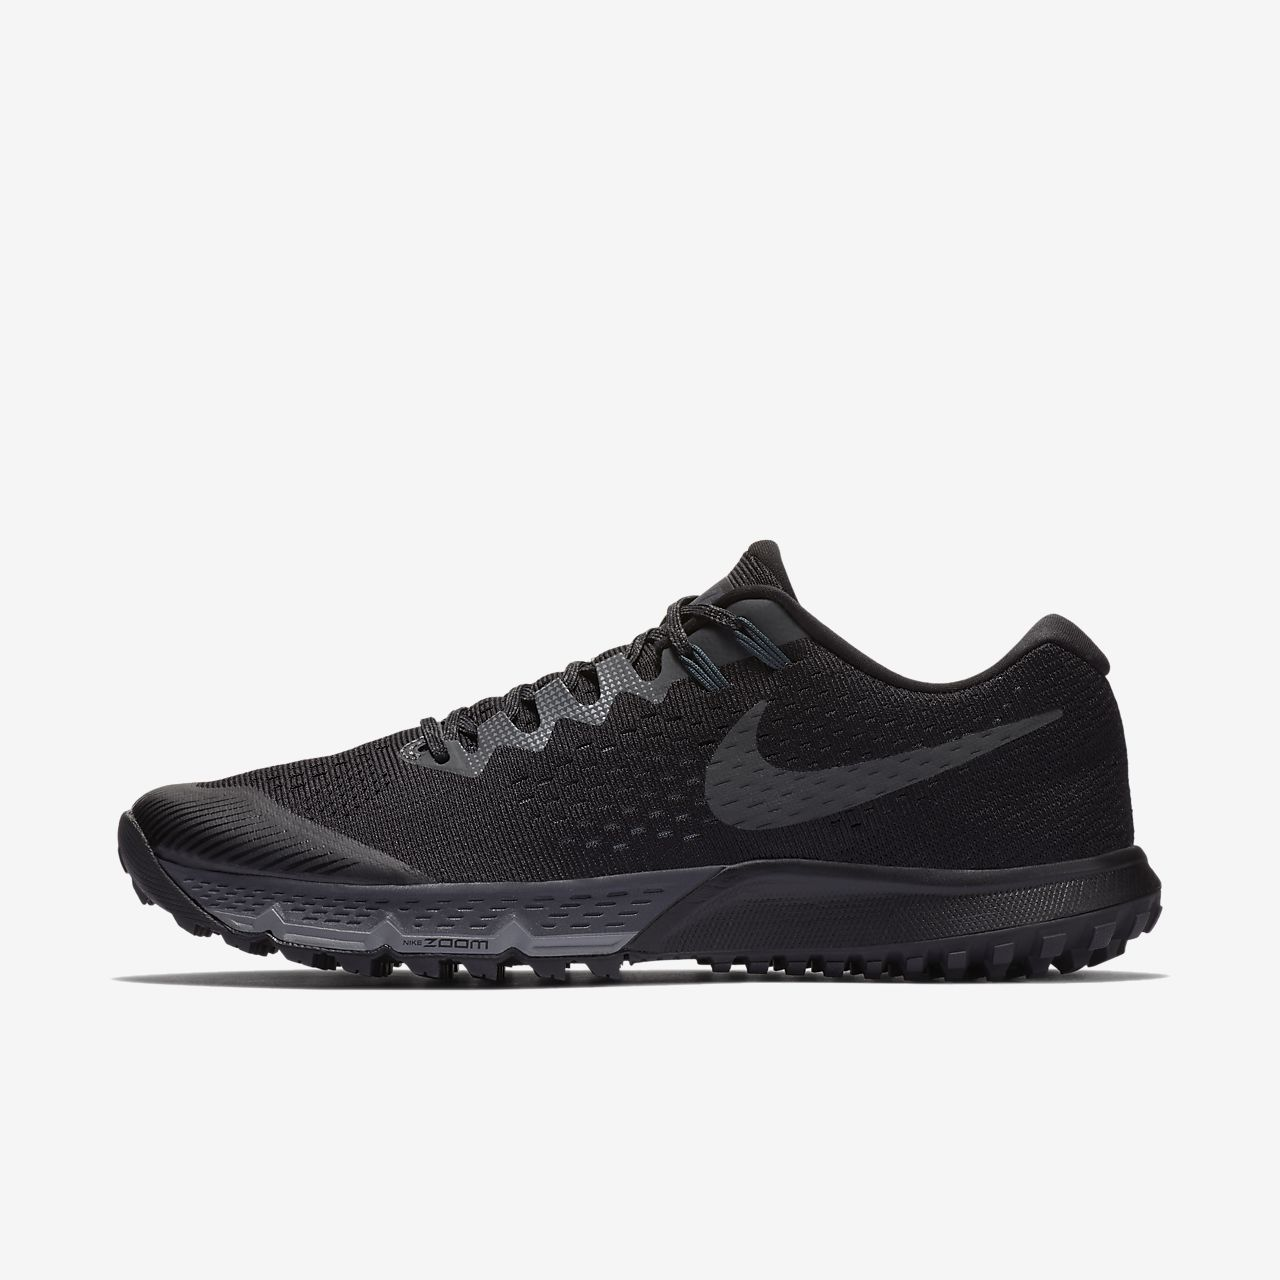 Air Hommes Zoom Terre Kiger 4 Chaussure De Course Nike xXcPUUVqVD